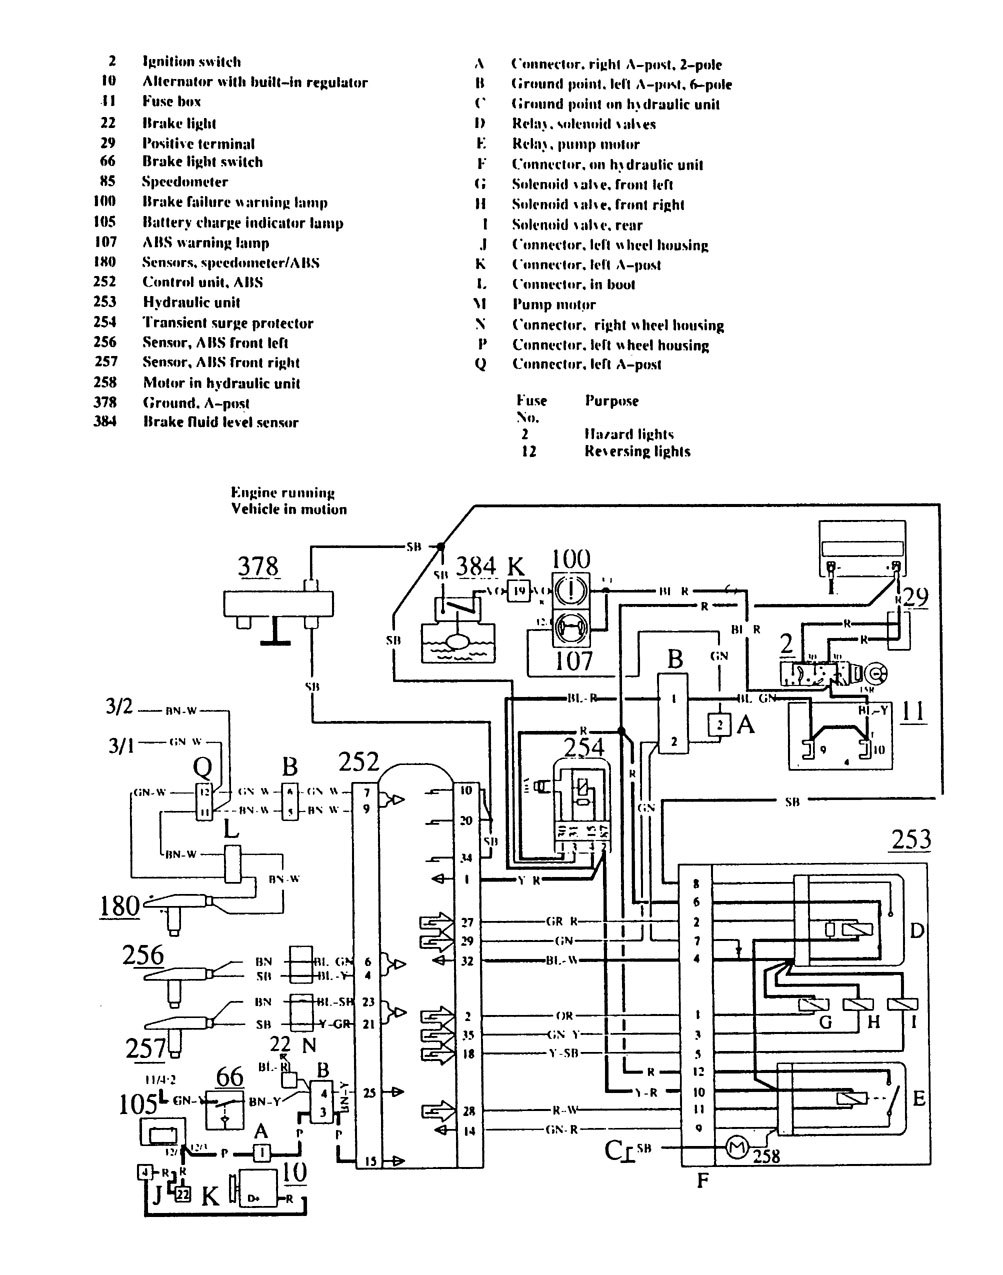 1989 Volvo 240 Wiring Diagrams Schematics 91 740 Fuse Box Diagram Starter Odicis Radio 1992 940